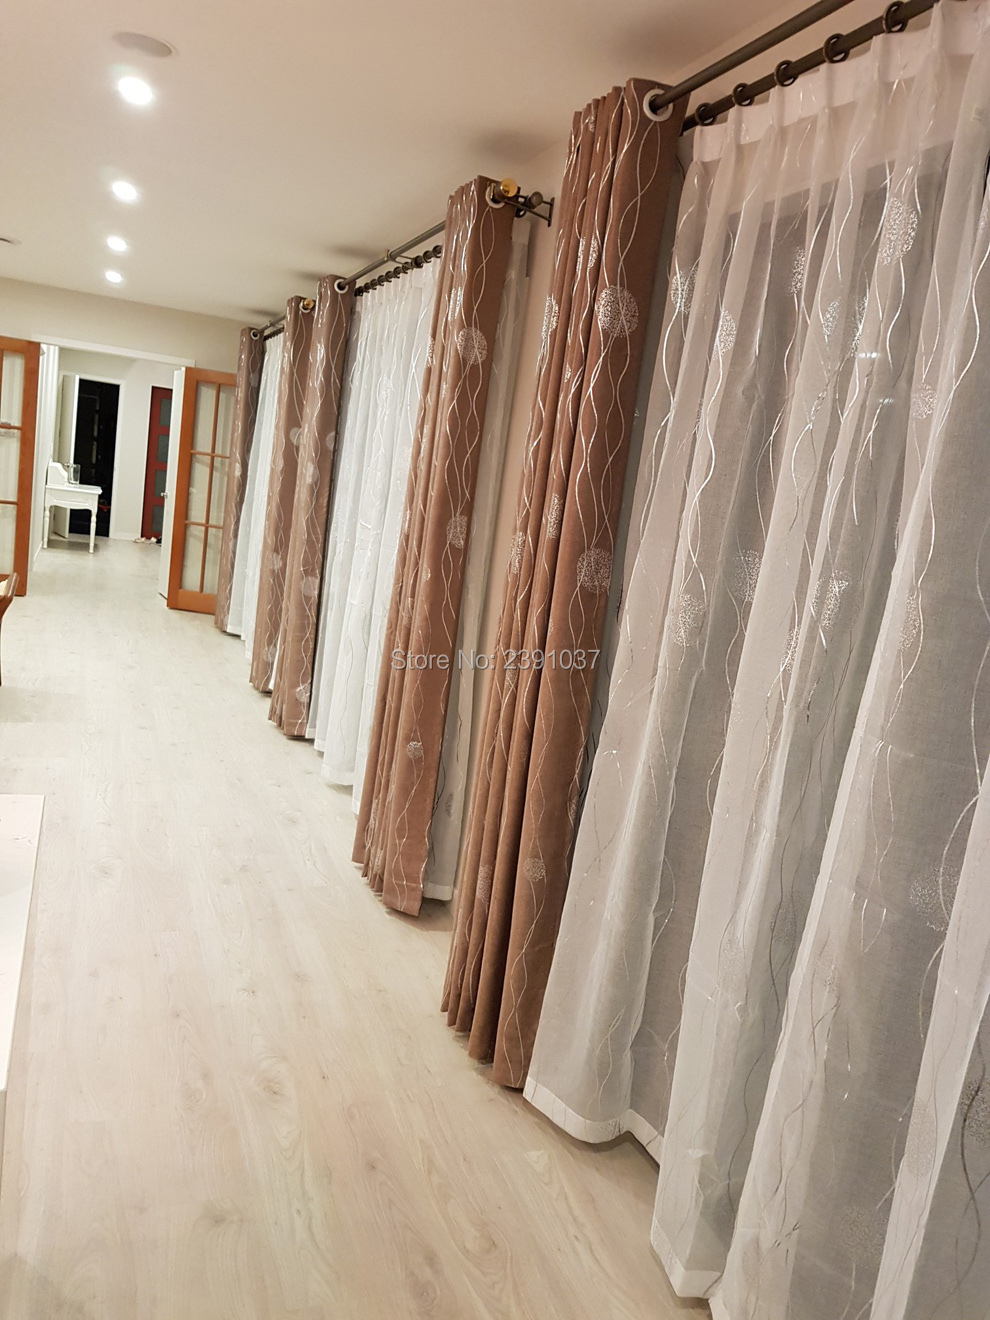 luxurious roman rods mute europe curtain rods single and double rod curtain rods curtains track accessories